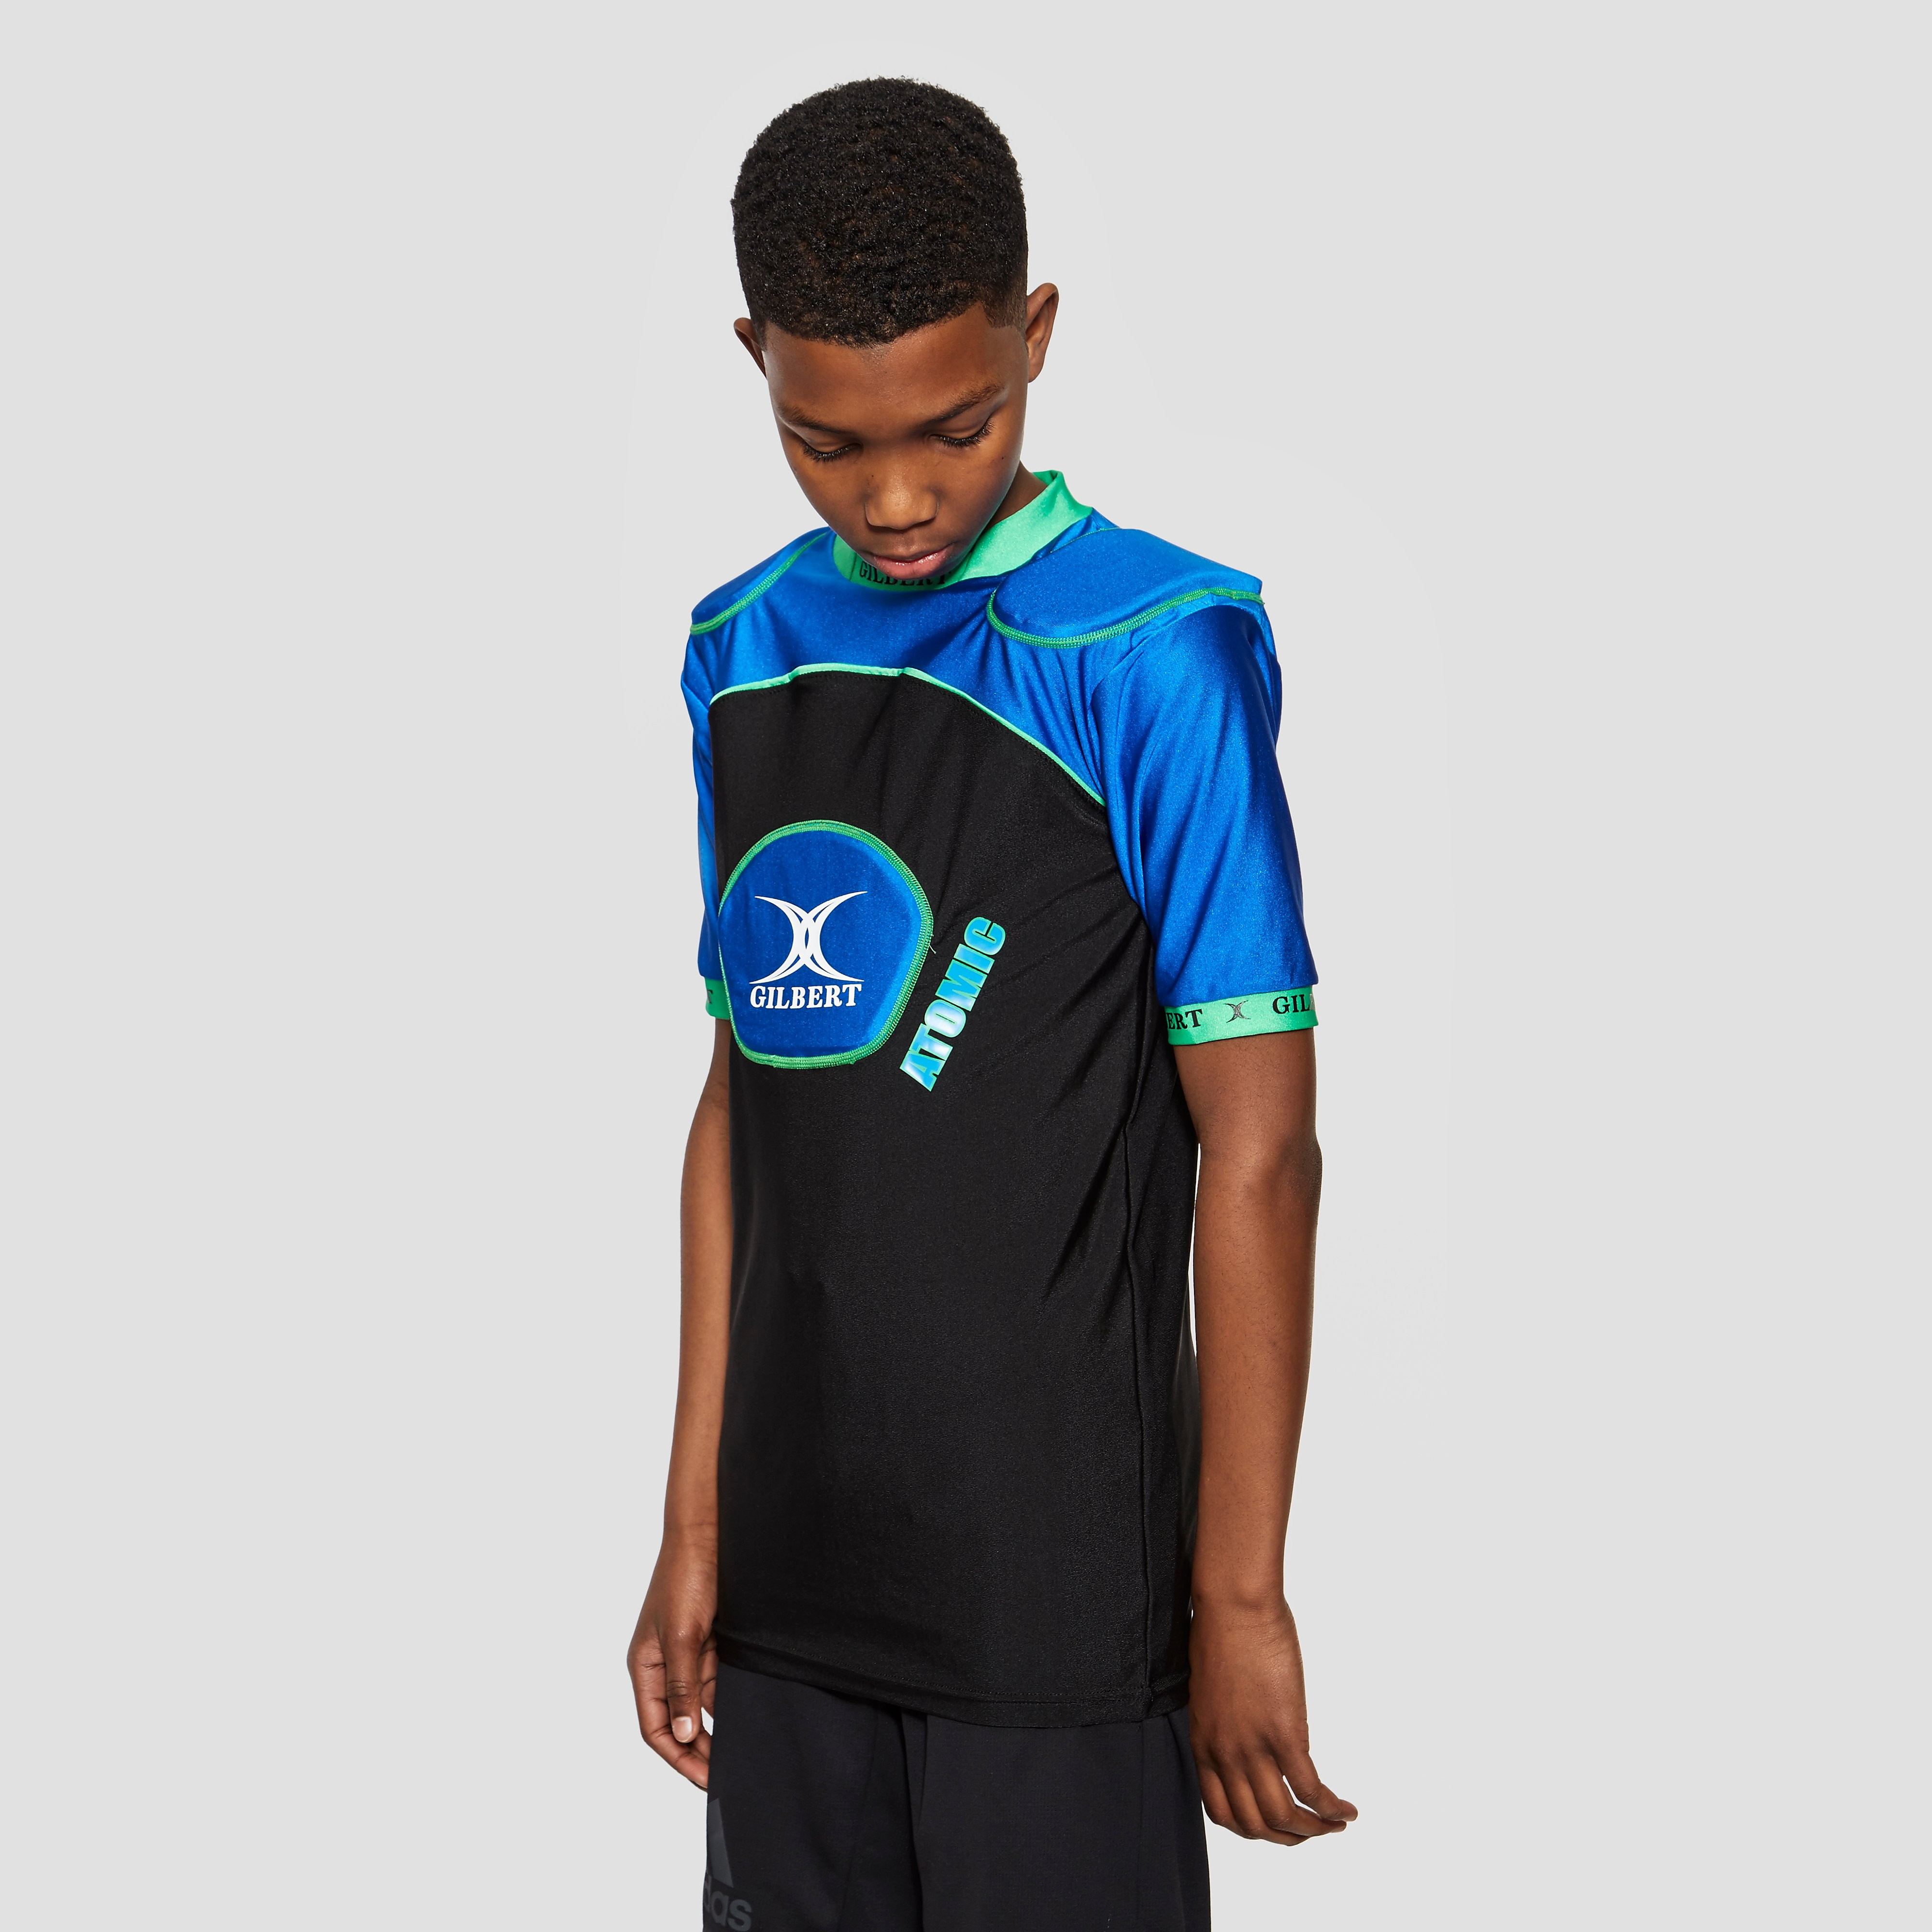 Gilbert Junior Atomic V2 Rugby Body Armour